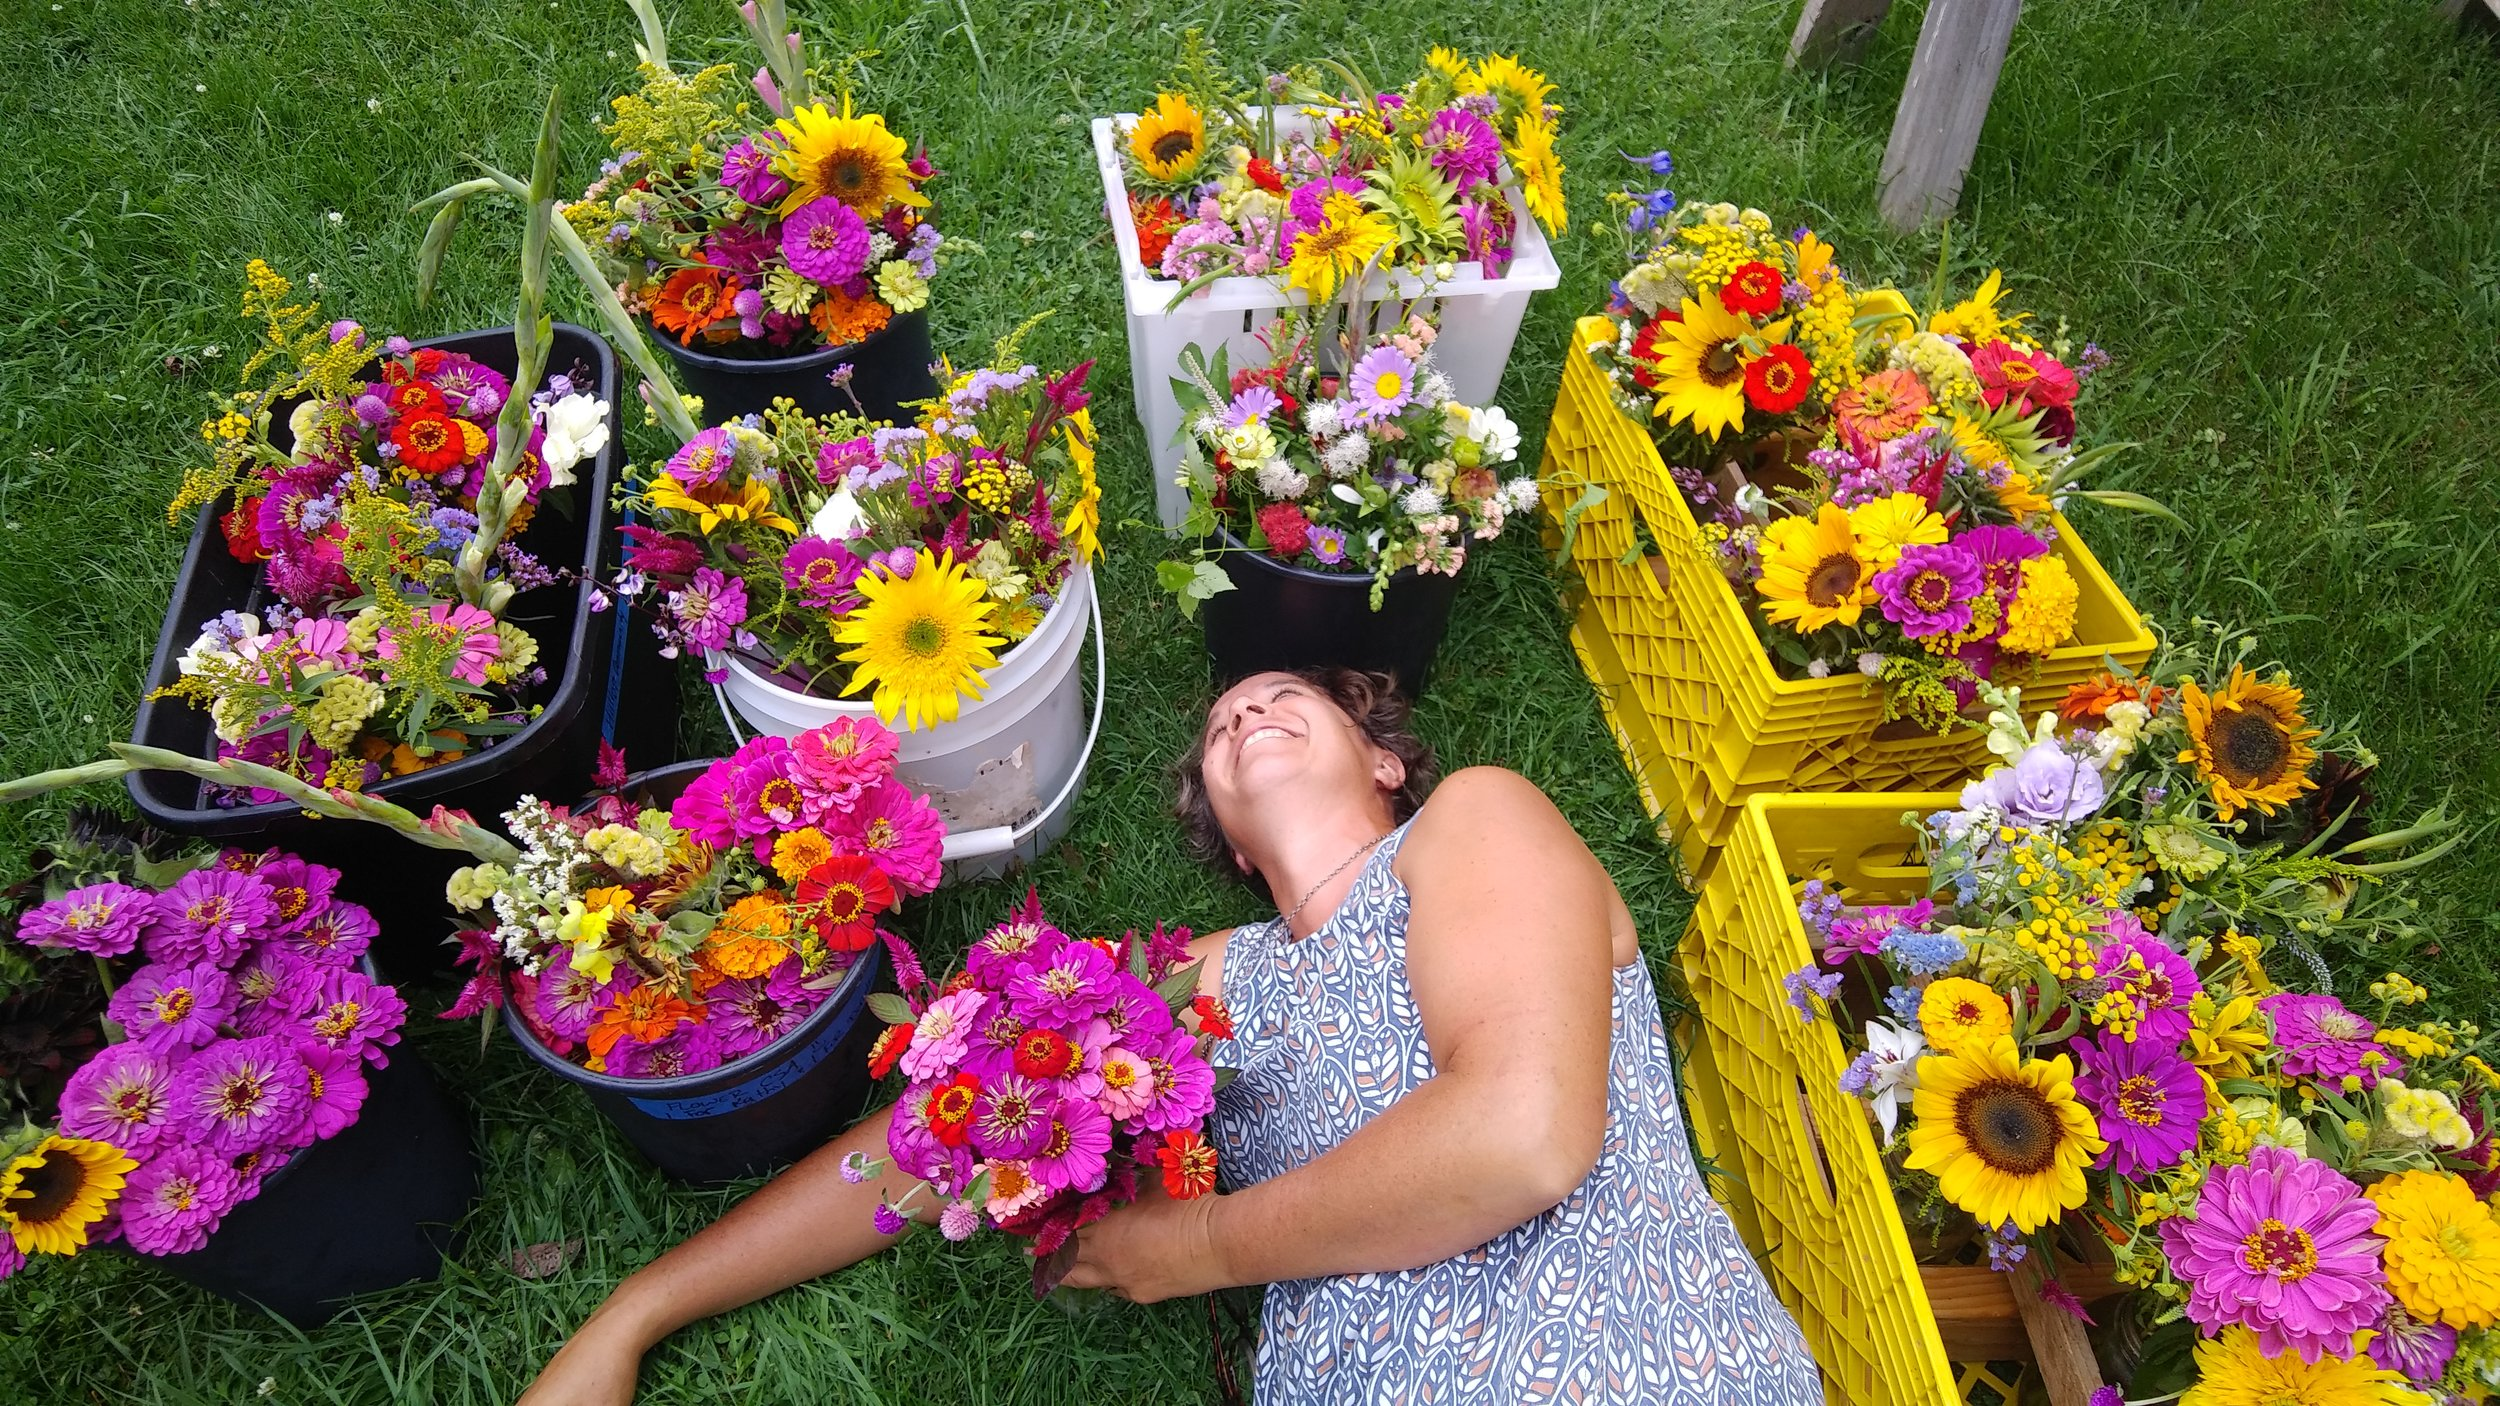 lying down amidst the zinnia bouquets. Photo by Rob McClure